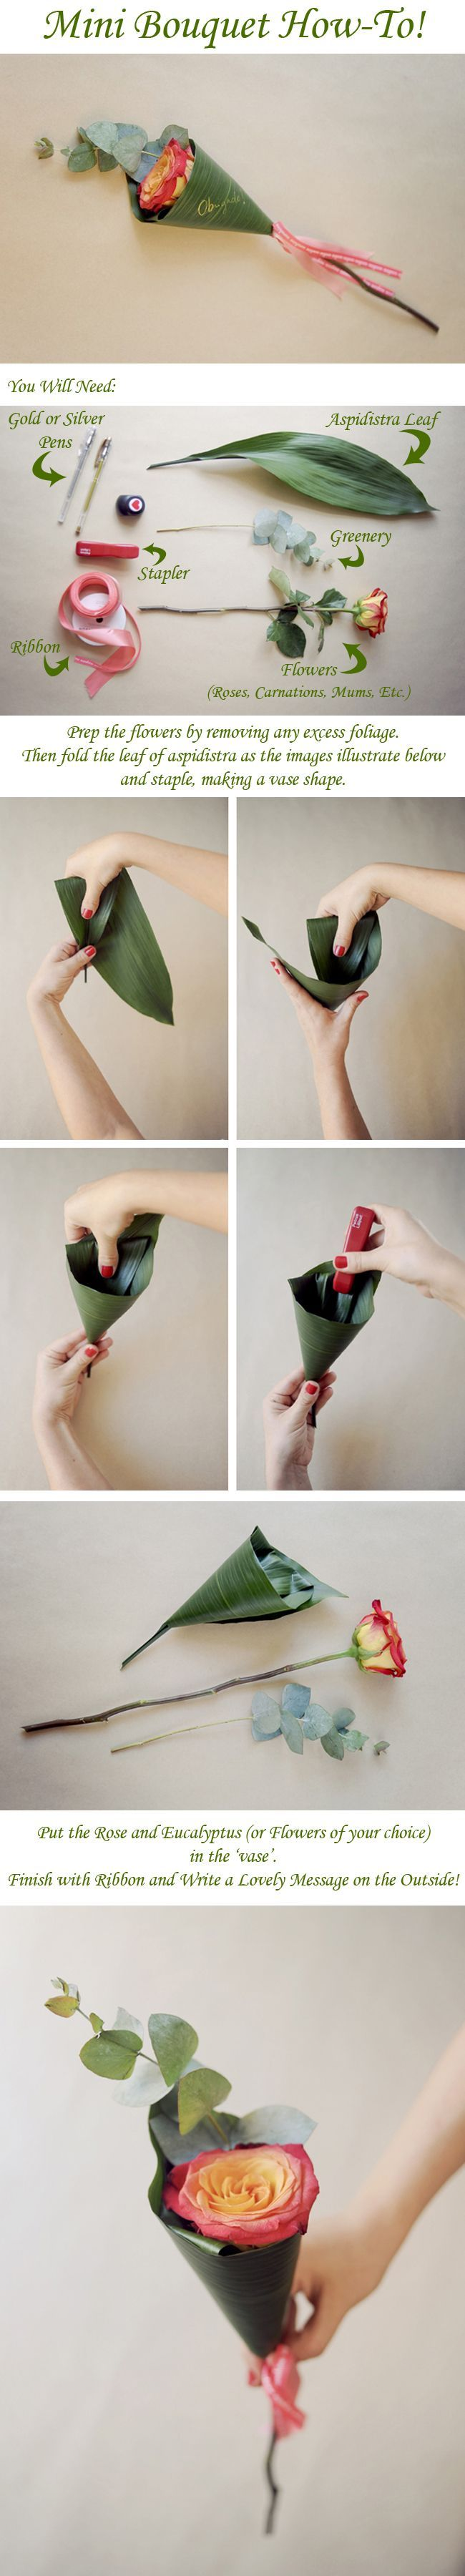 Mini Bouquet How-To – Found on Pepper and Buttons - Photos by: Piteira Photography